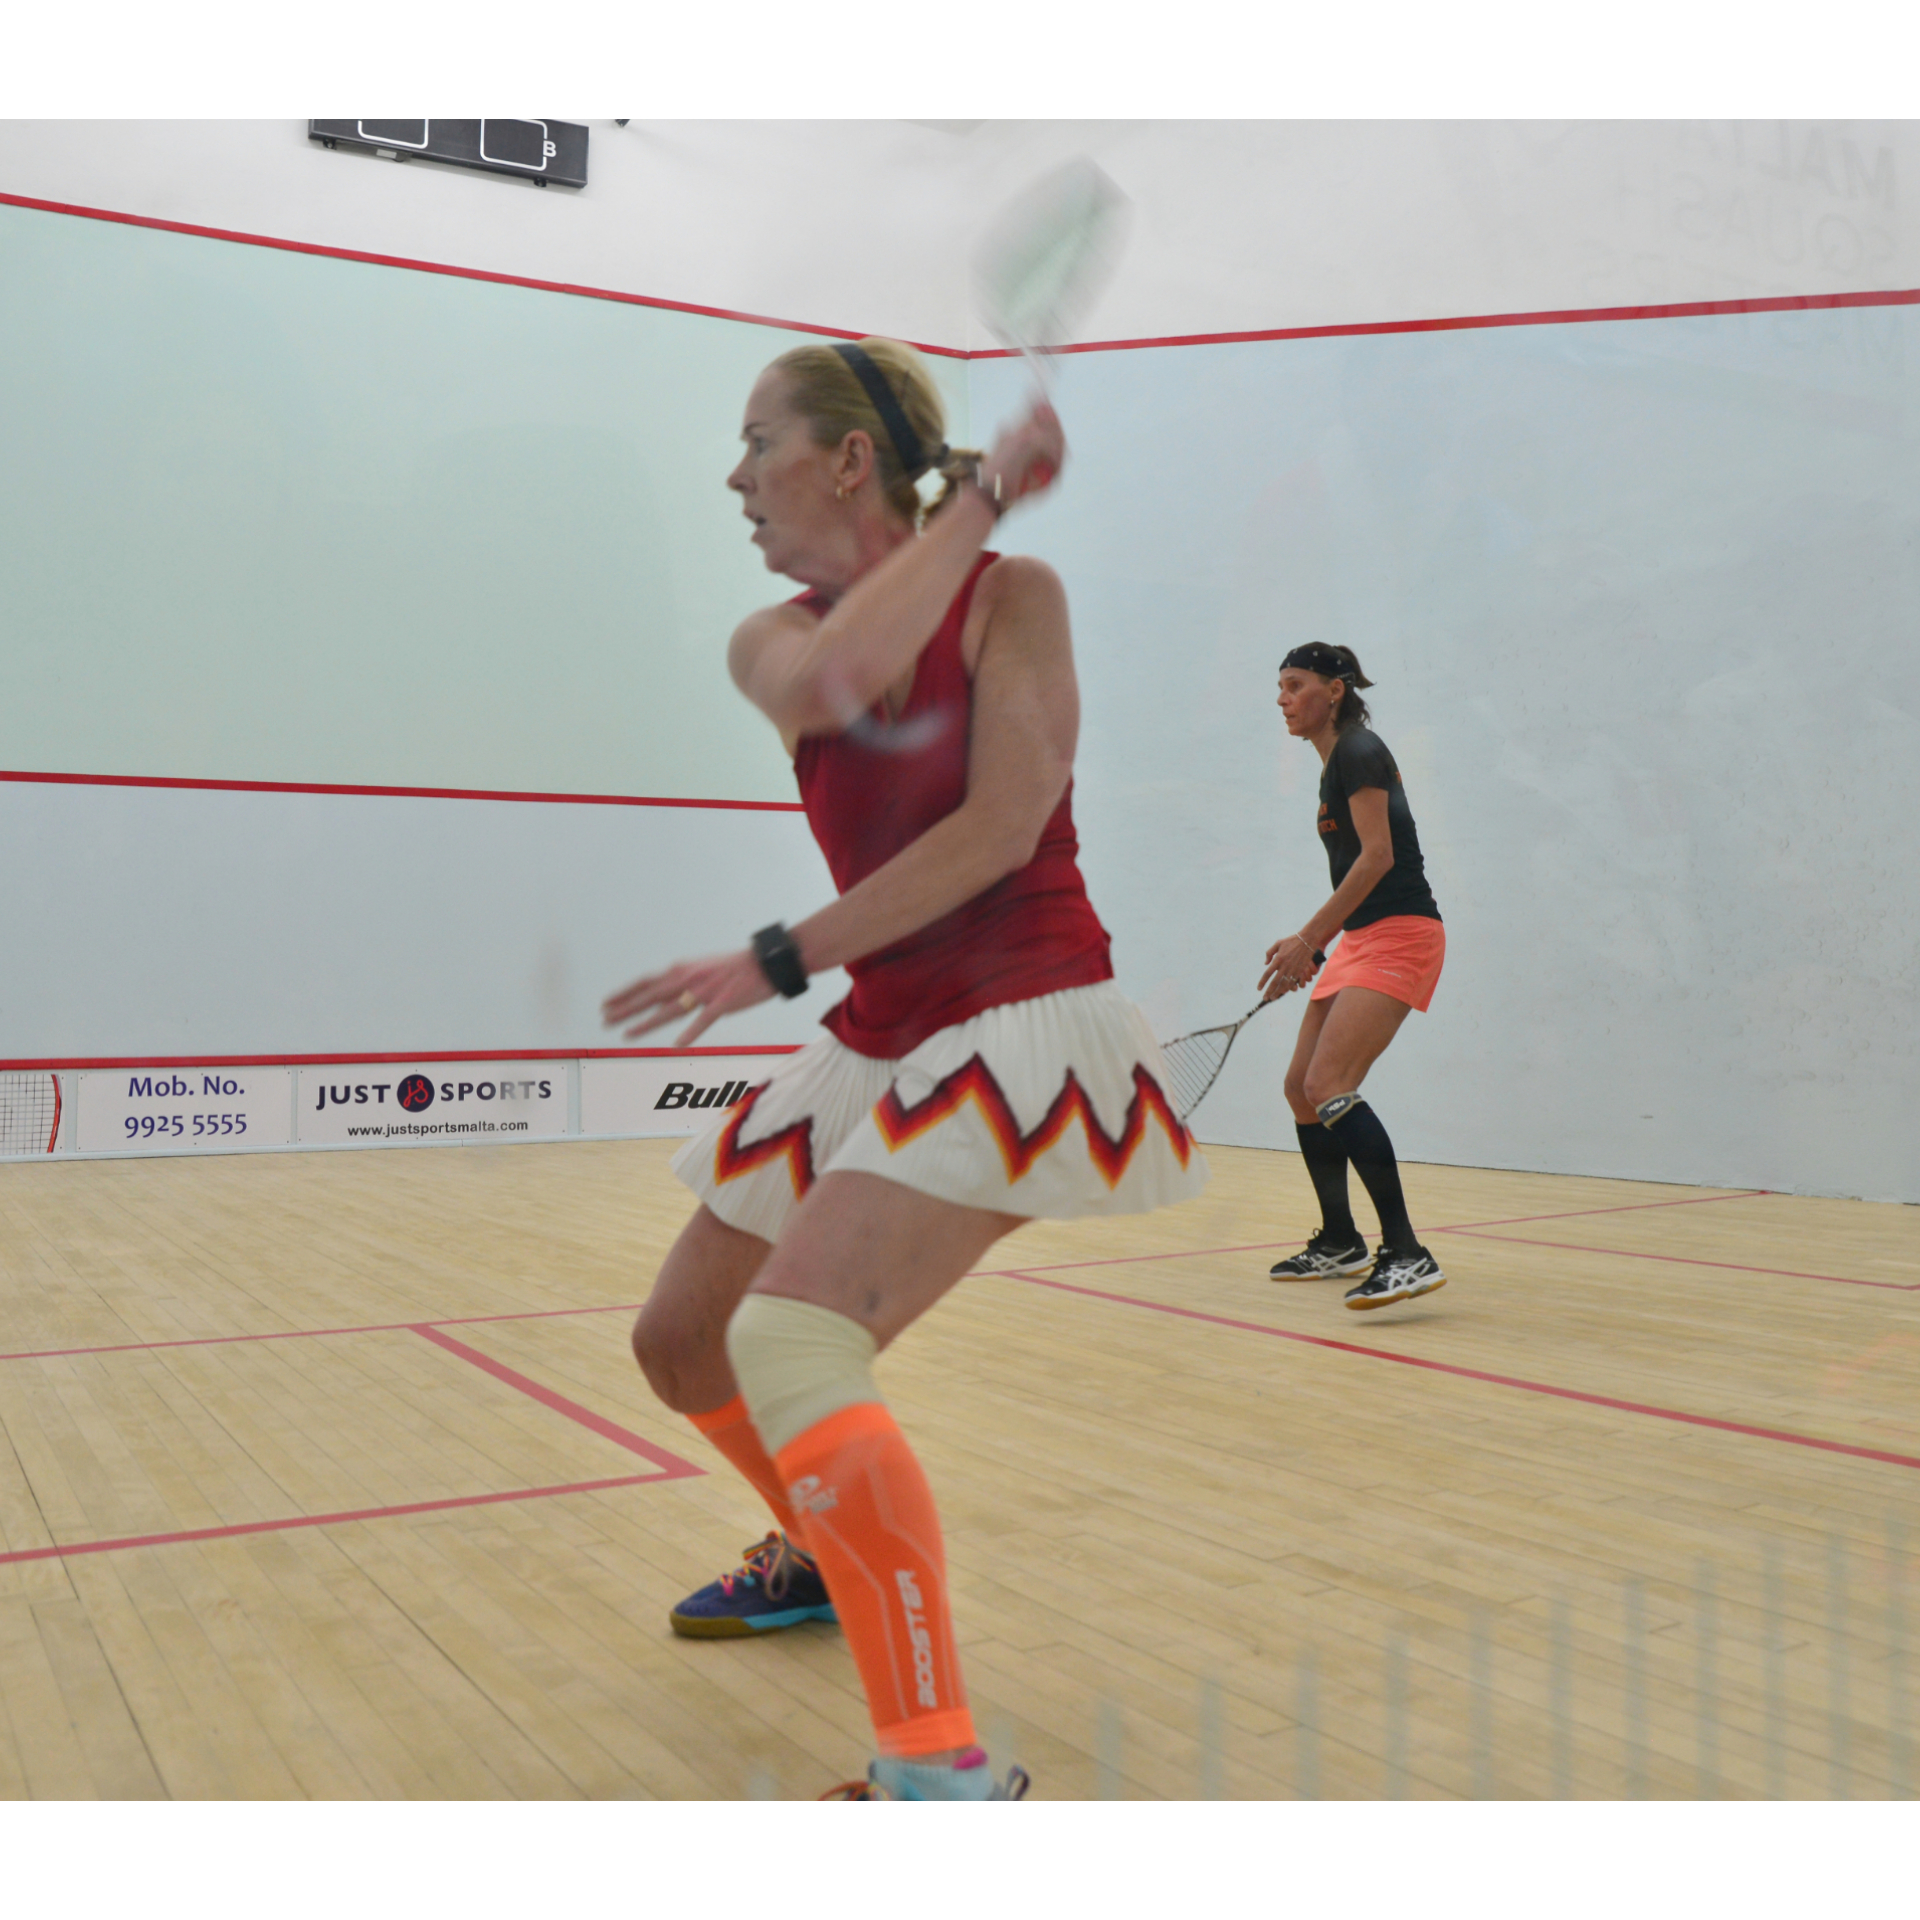 Masters Squash gives a new love of sport